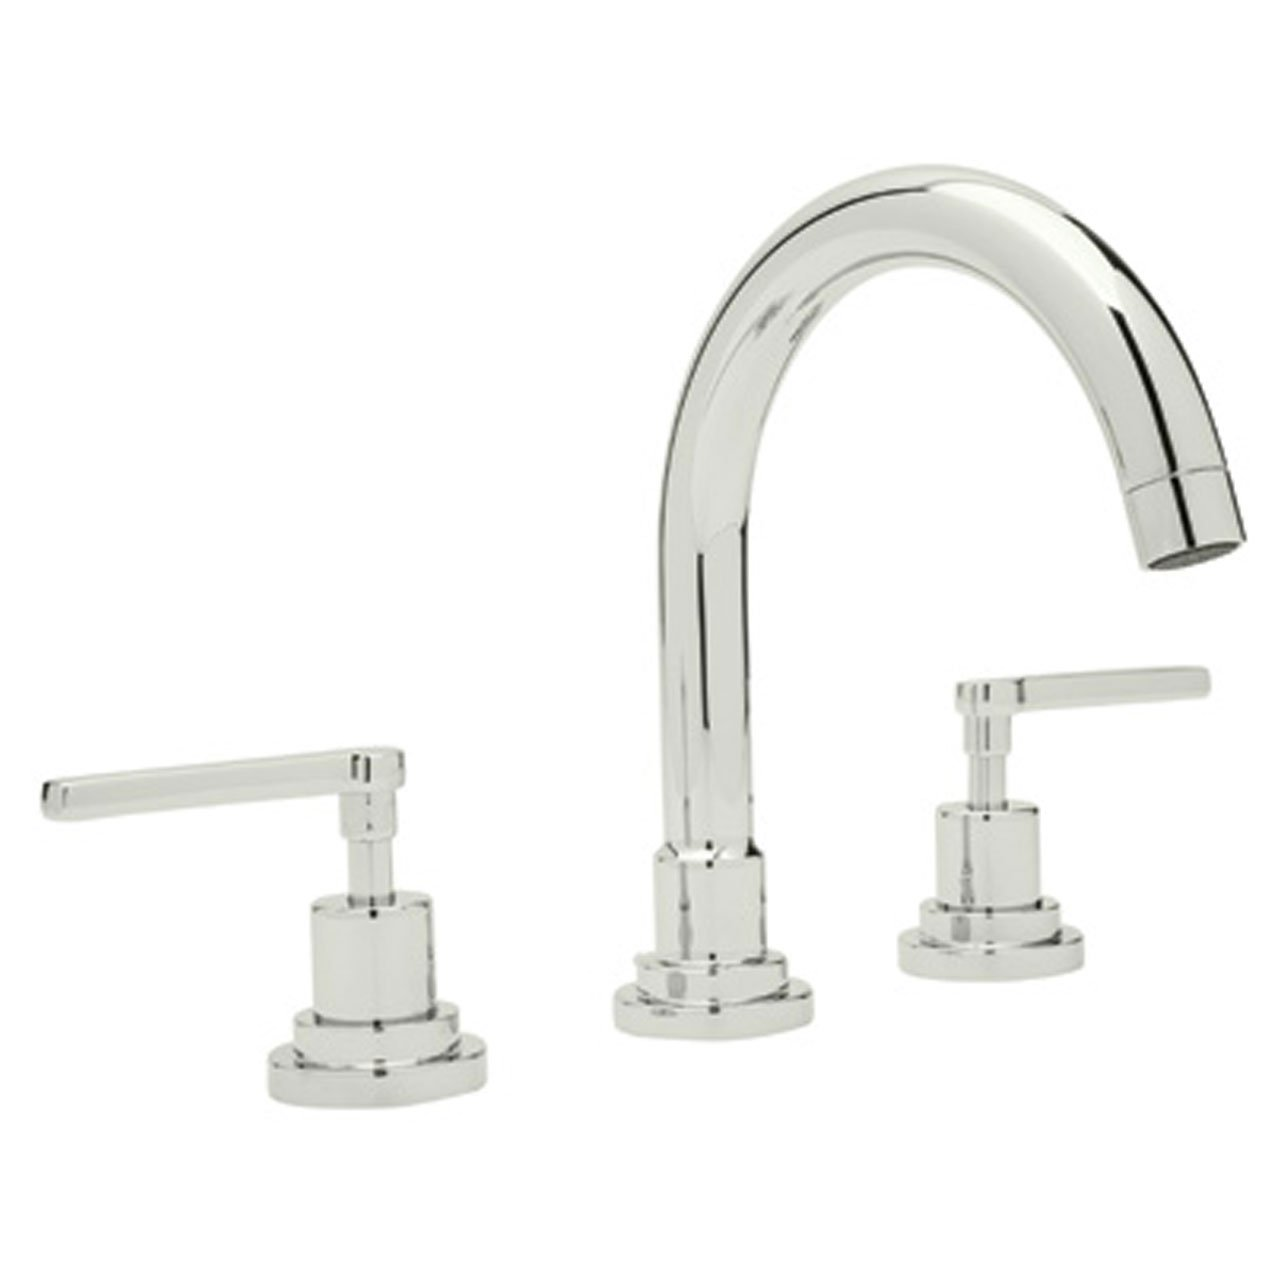 Rohl A2228LMPN-2 Lombardia C-Spout Widespread Bathroom Sink Faucet ...